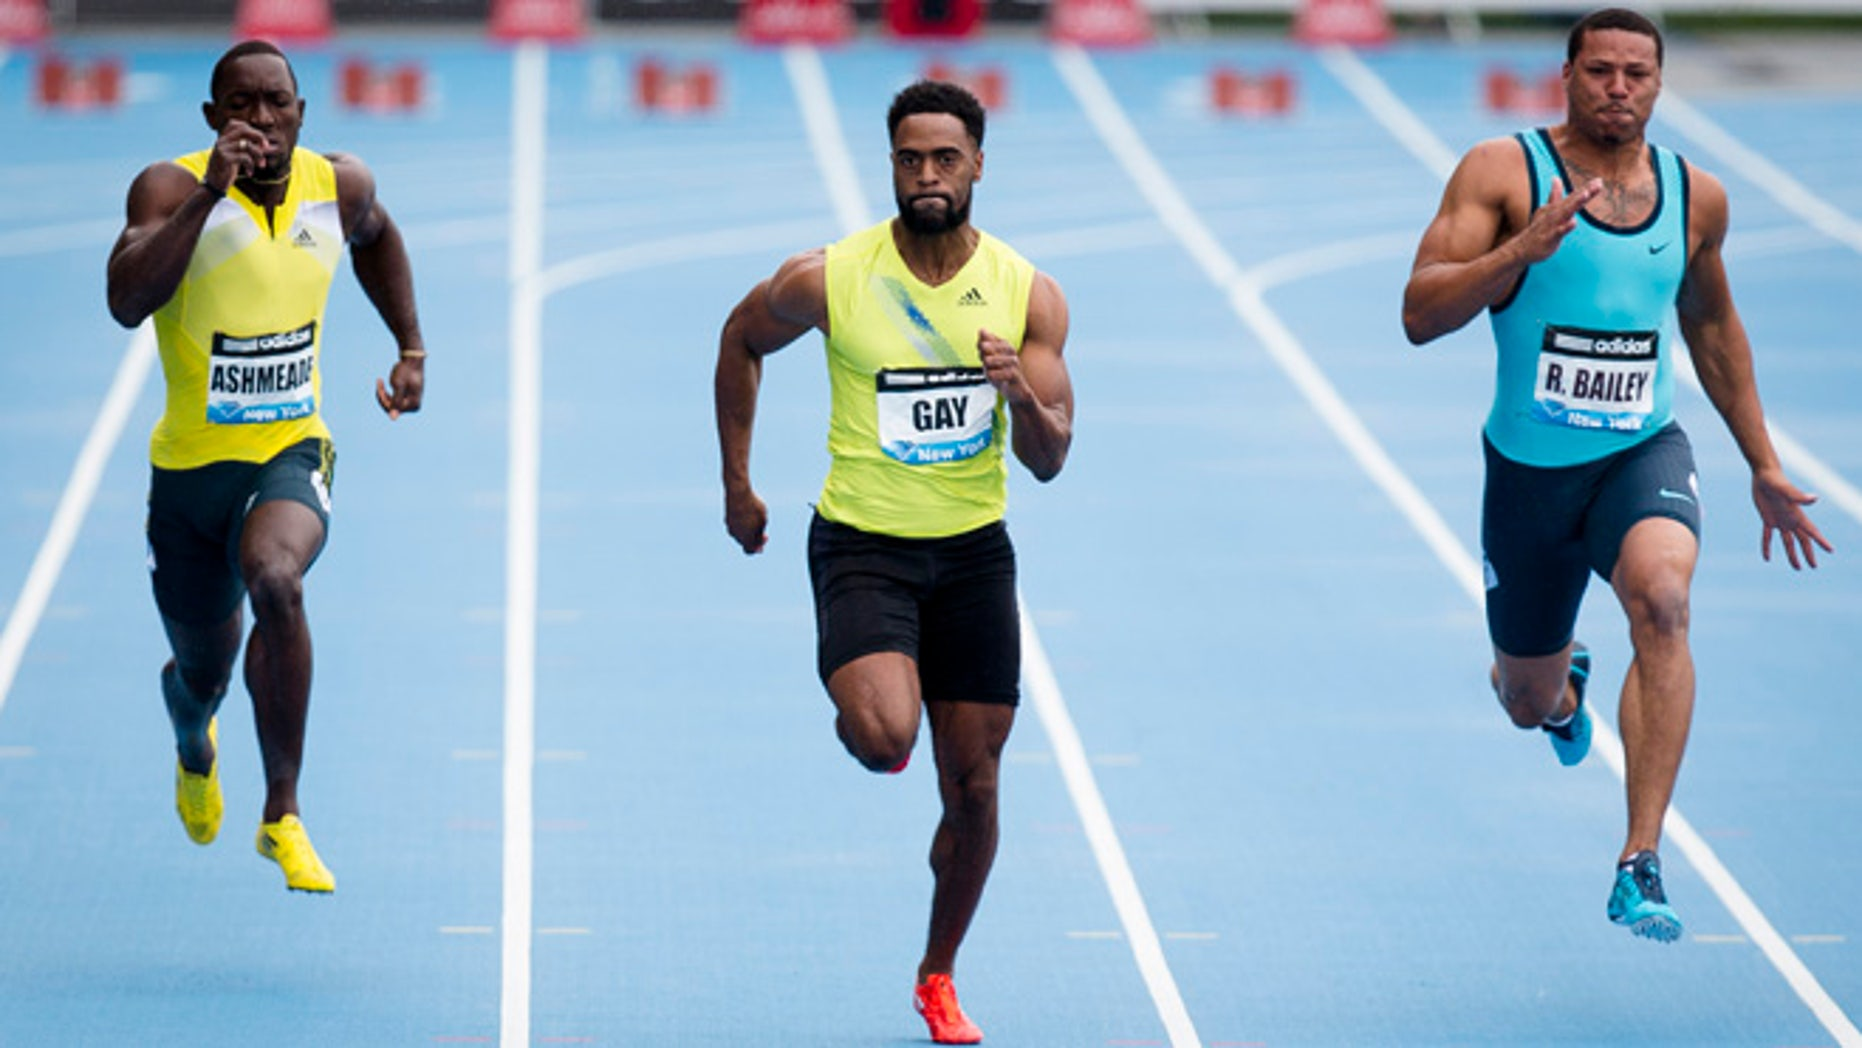 In a May 25, 2013, file photo Tyson Gay, center, competes in the Men's 100m alongside Ryan Bailey,  right, and Nickel Ashmeade, of Jamaica,   during the IAAF Diamond League Grand Prix competition  in New York. Gay was informed Friday July 12, 2013, he has tested positive for a banned substance and says he will pull out of the world championships next month in Moscow.